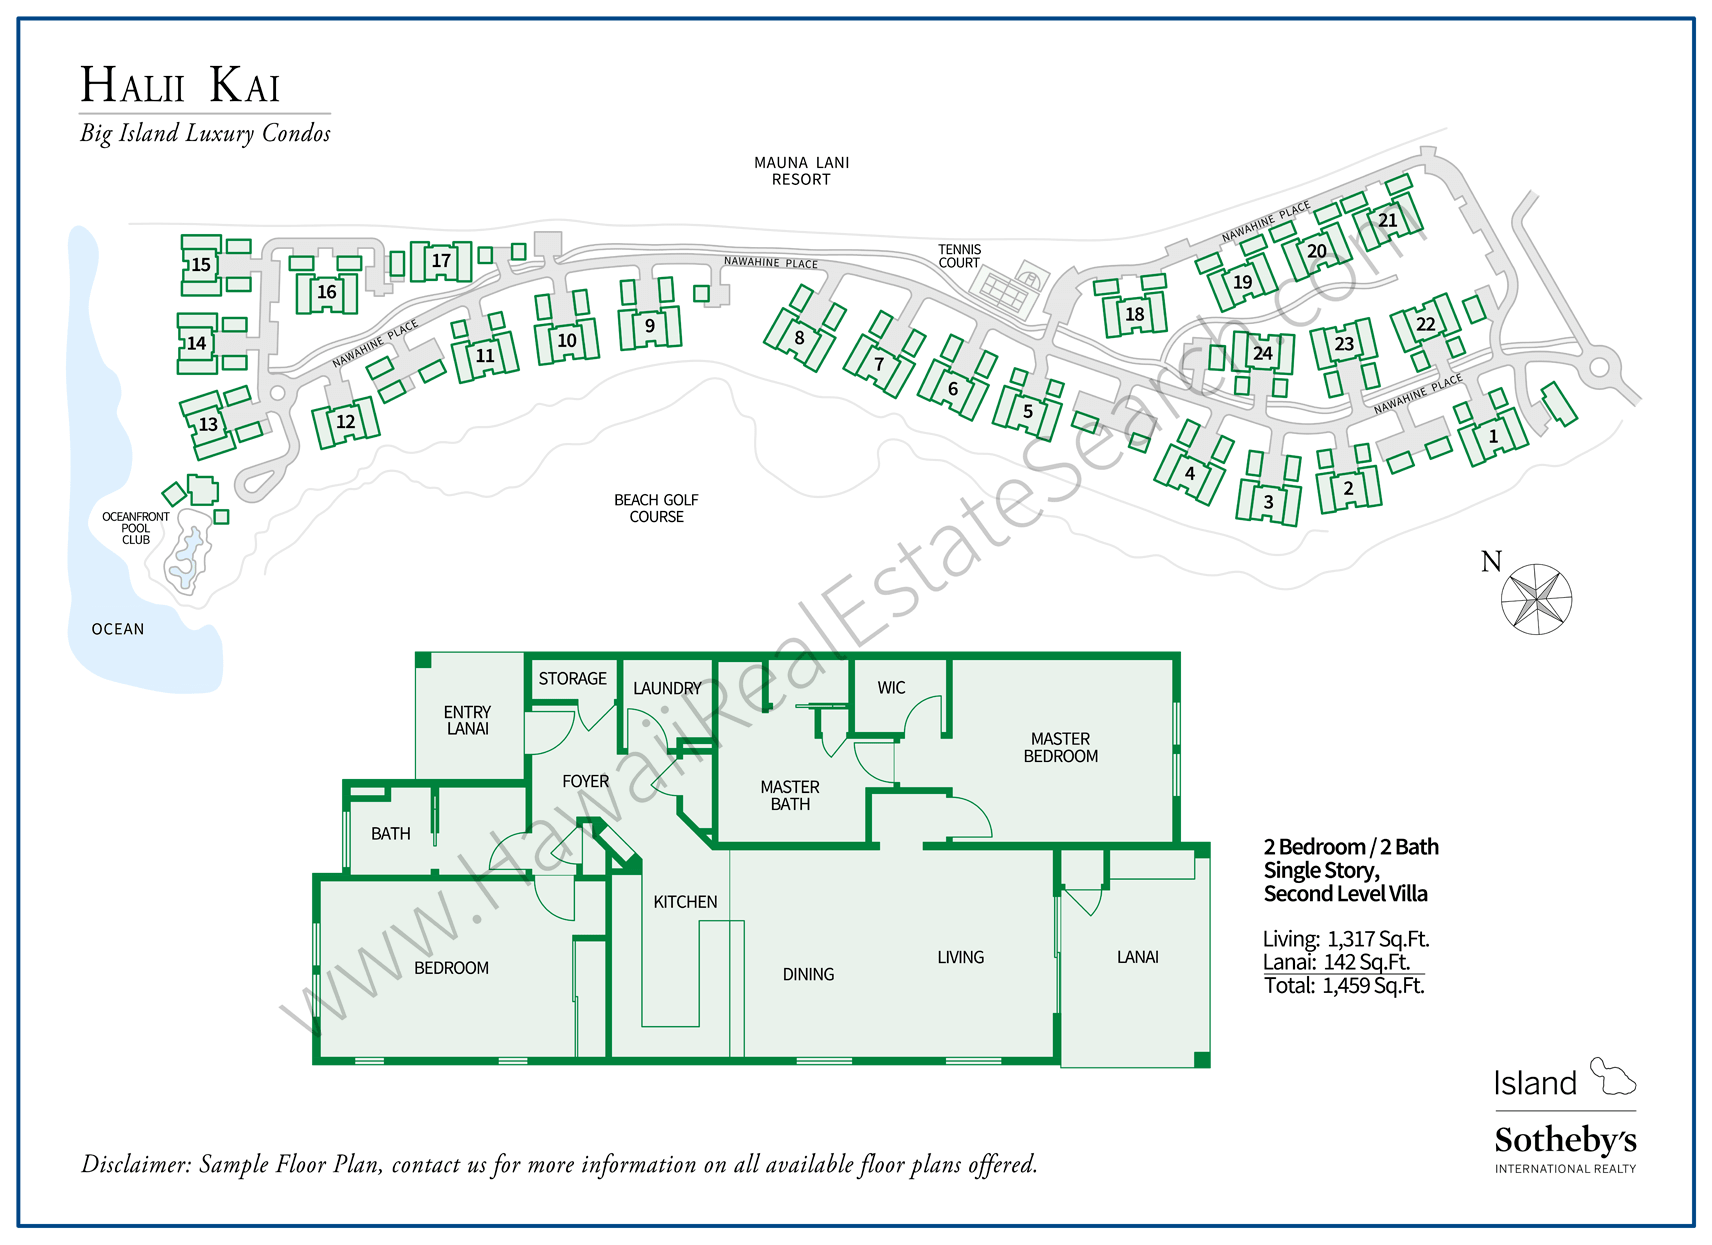 Halii Kai Property Map